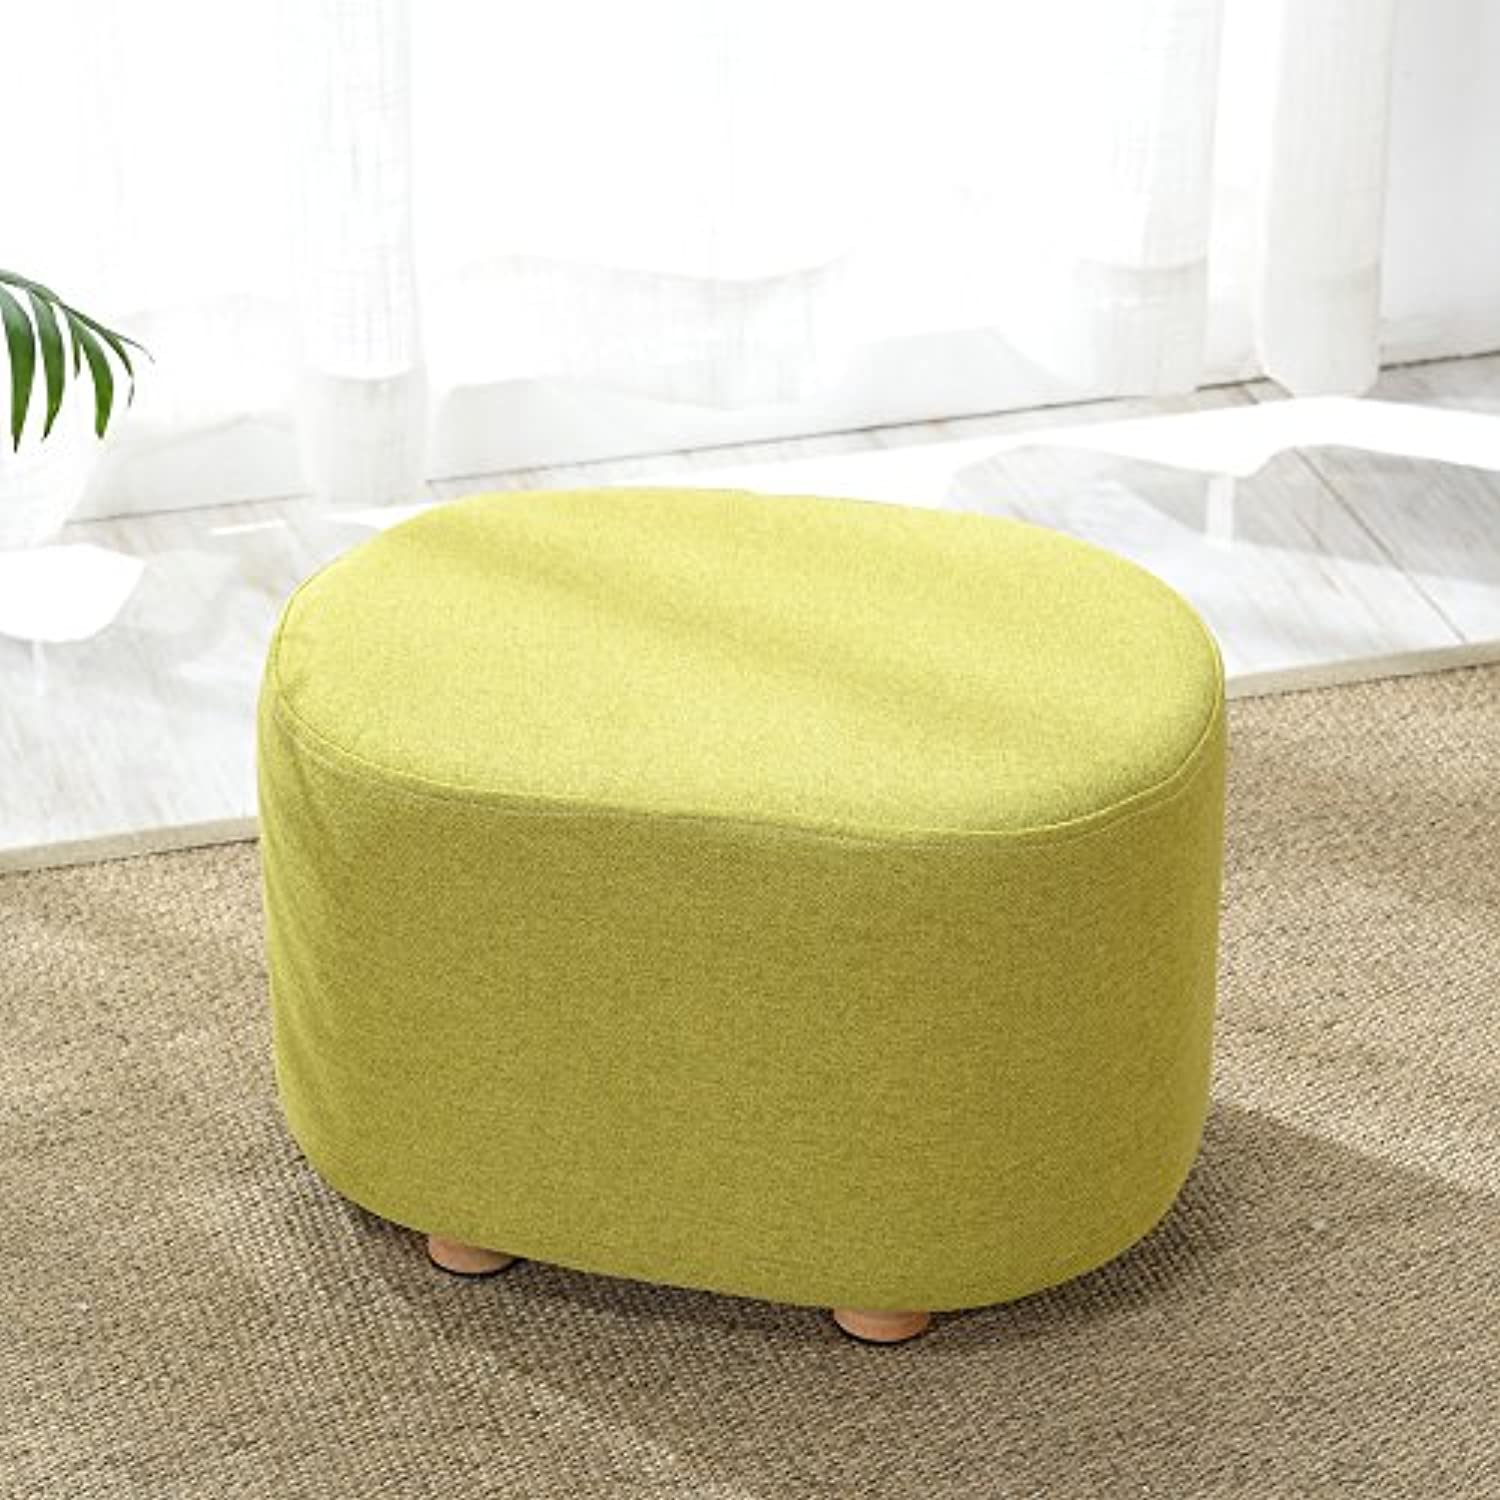 Dana Carrie Sitting on a low stool stool for shoes and the implementation of the sofa chair fabrics solid wood in a minimalist modern living room ideas a small round, Green